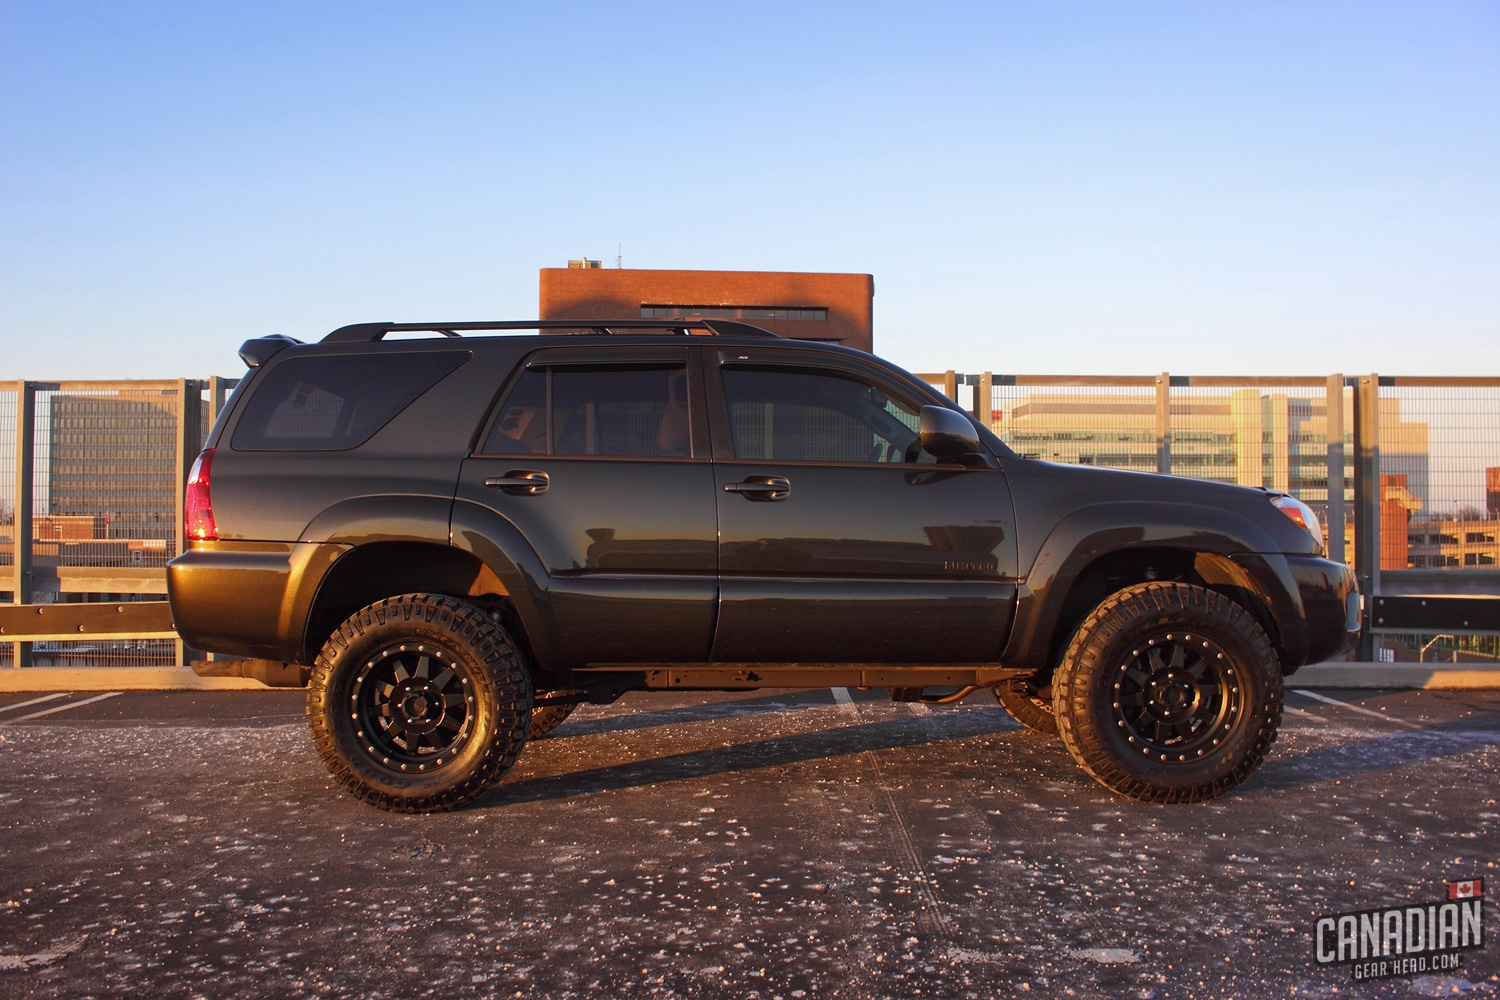 Runner Lifted >> The Daily Grind: My 2007 Toyota 4runner